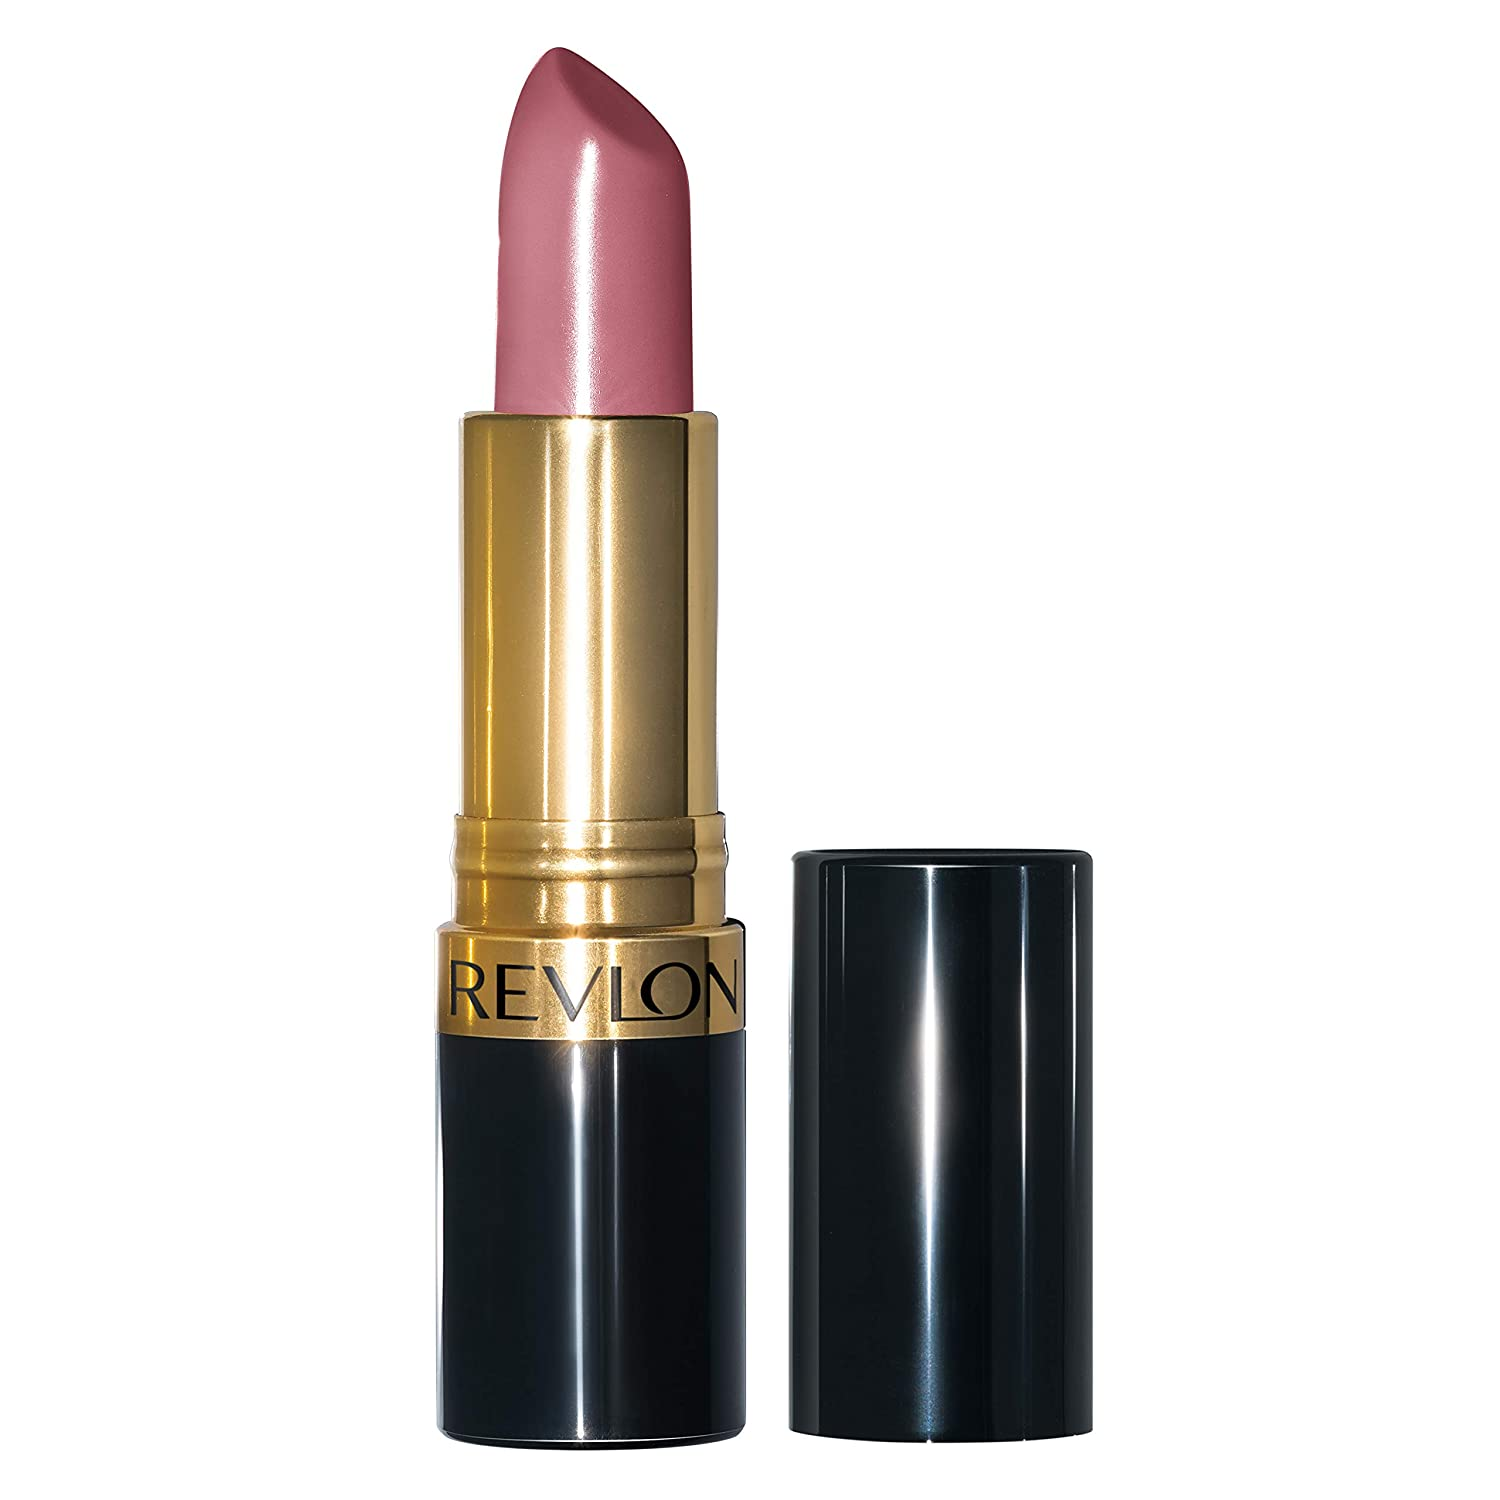 Revlon Super Lustrous Lipstick with Vitamin E and Avocado Oil, Cream Lipstick in Mauve, 764 On the Mauve